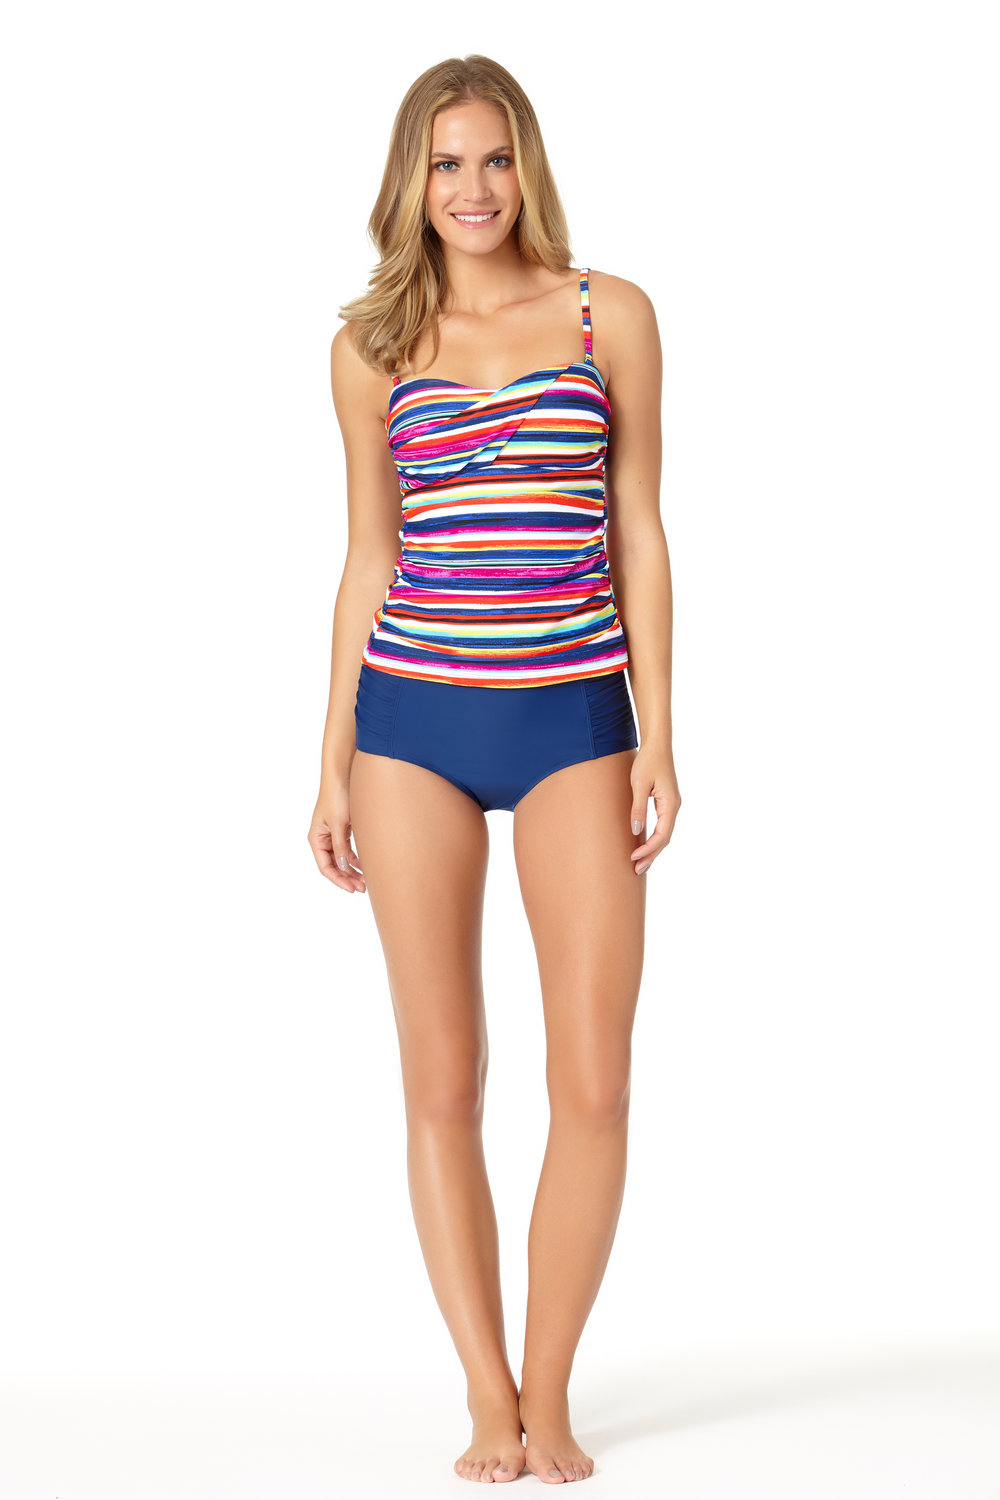 STYLE # CTL17403T / CTL17500B - Carnival Stripe Twist Bandini TopBUY NOW ON WALMARTSolid High Waist BottomBUY NOW ON WALMART